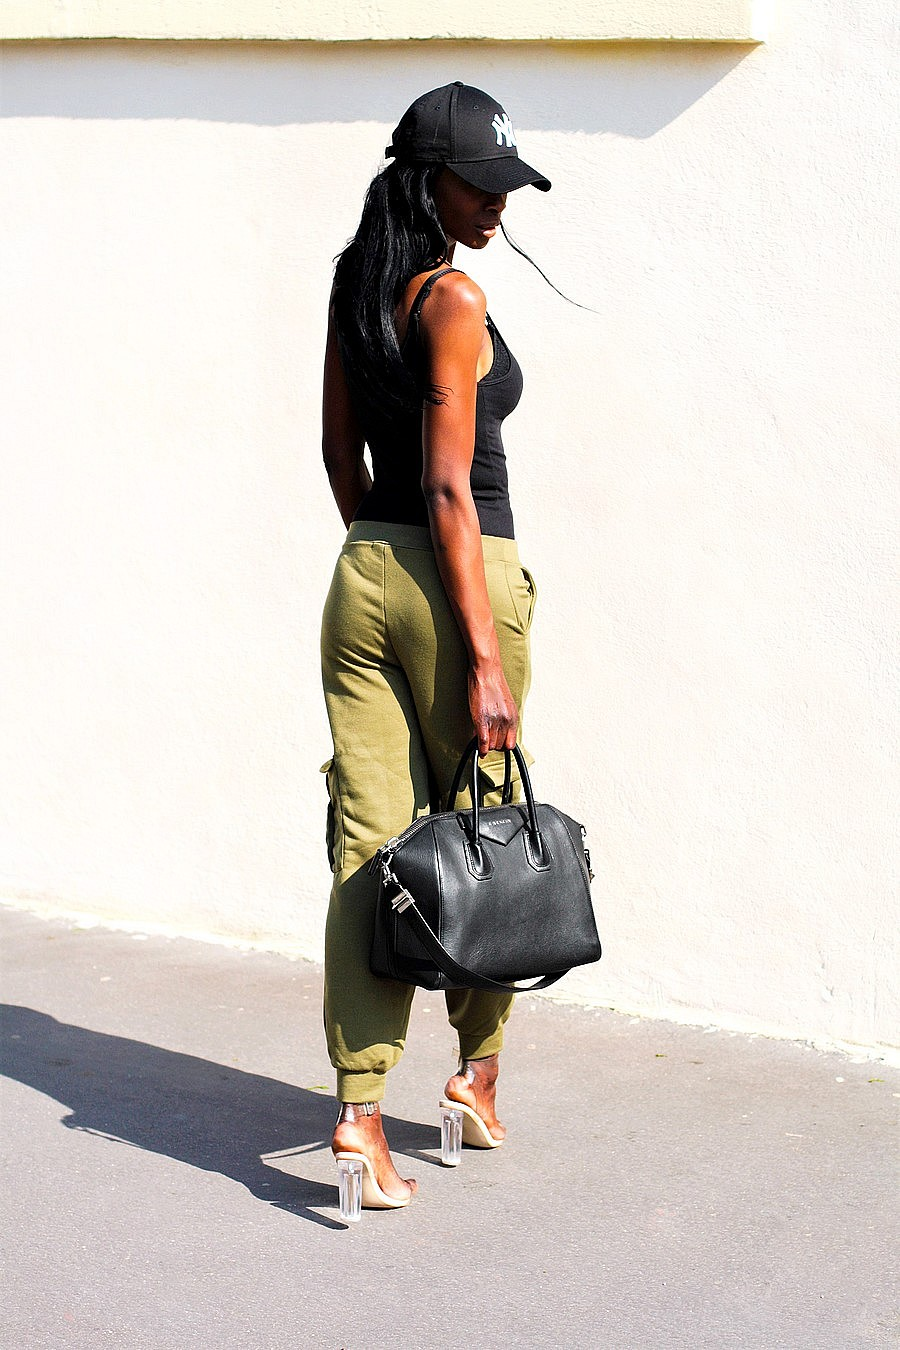 pantalon-kaki-militaire-tendance-sac-givenchy-antigona-body